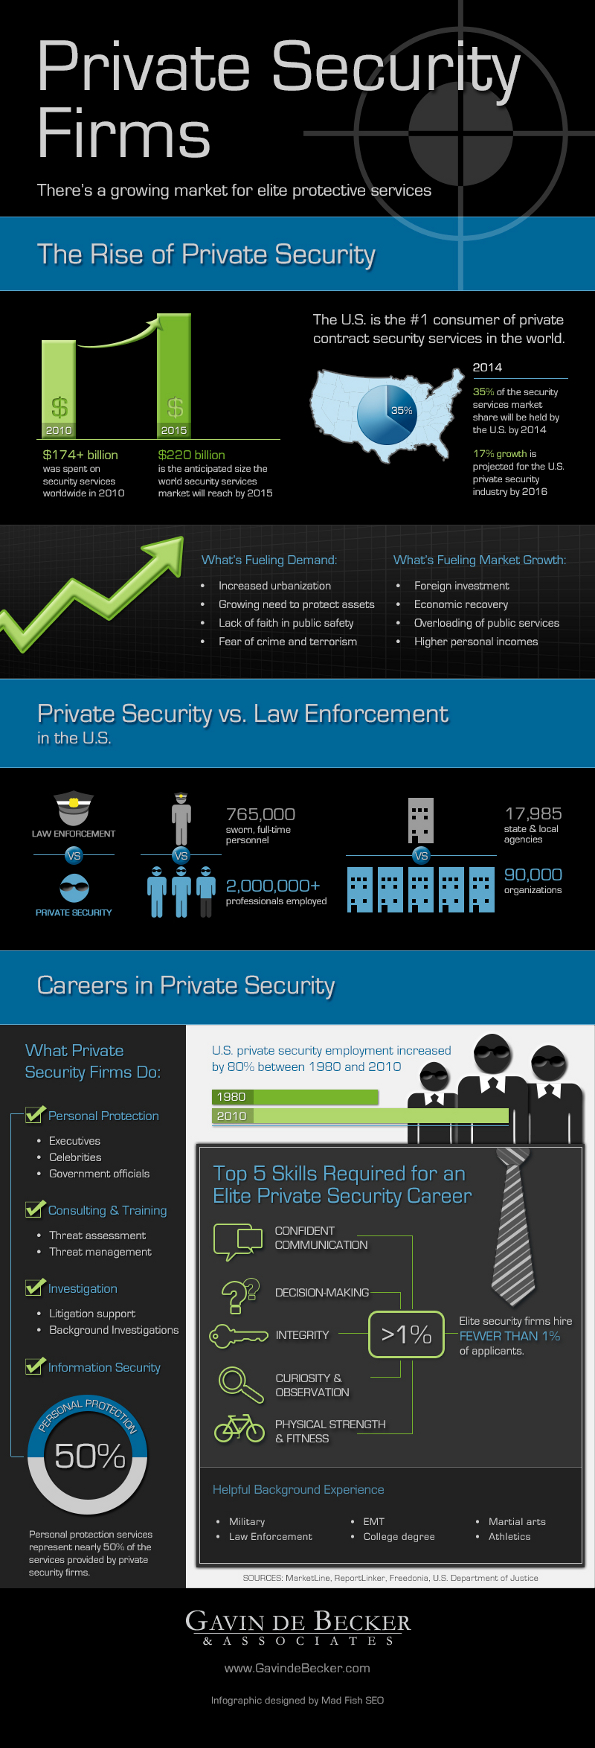 Private Security Industry Statistics and Trends